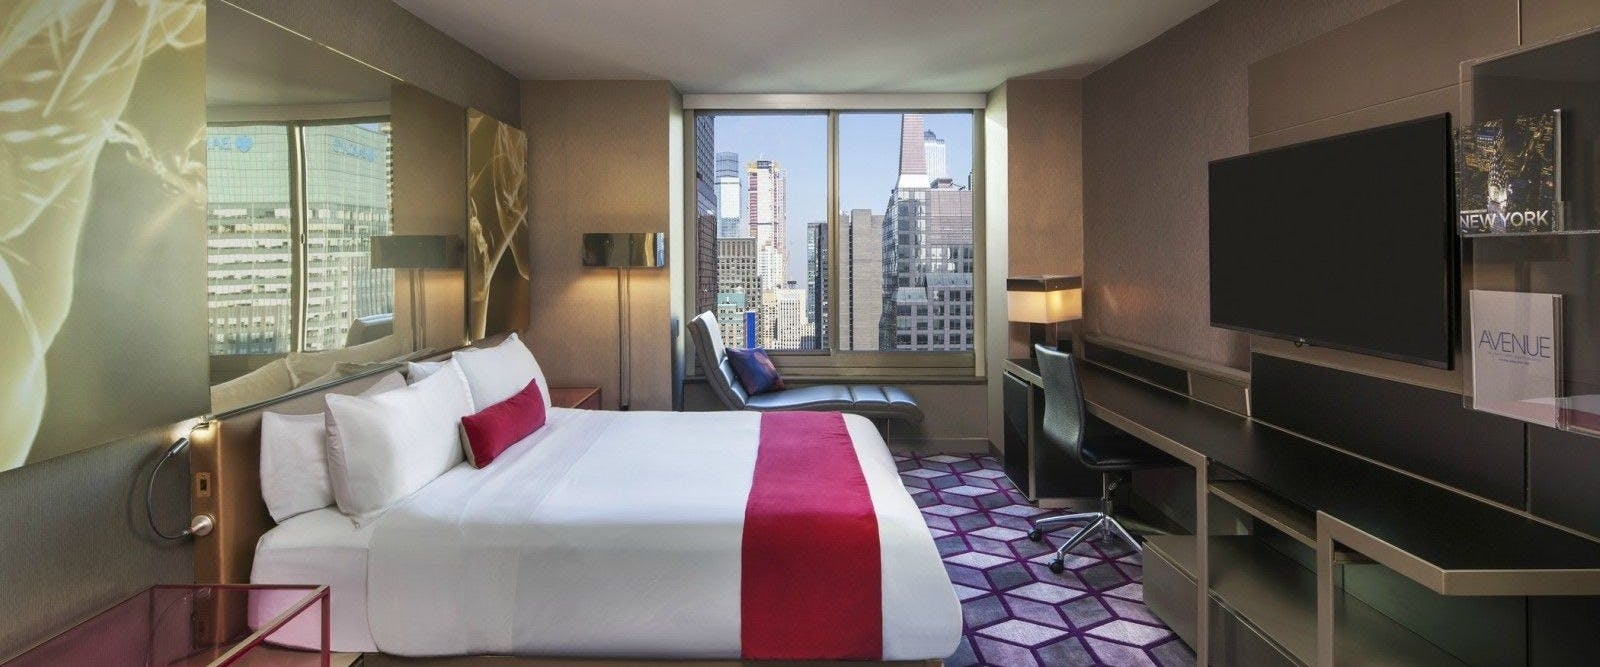 Bedroom At W New York - Times Square